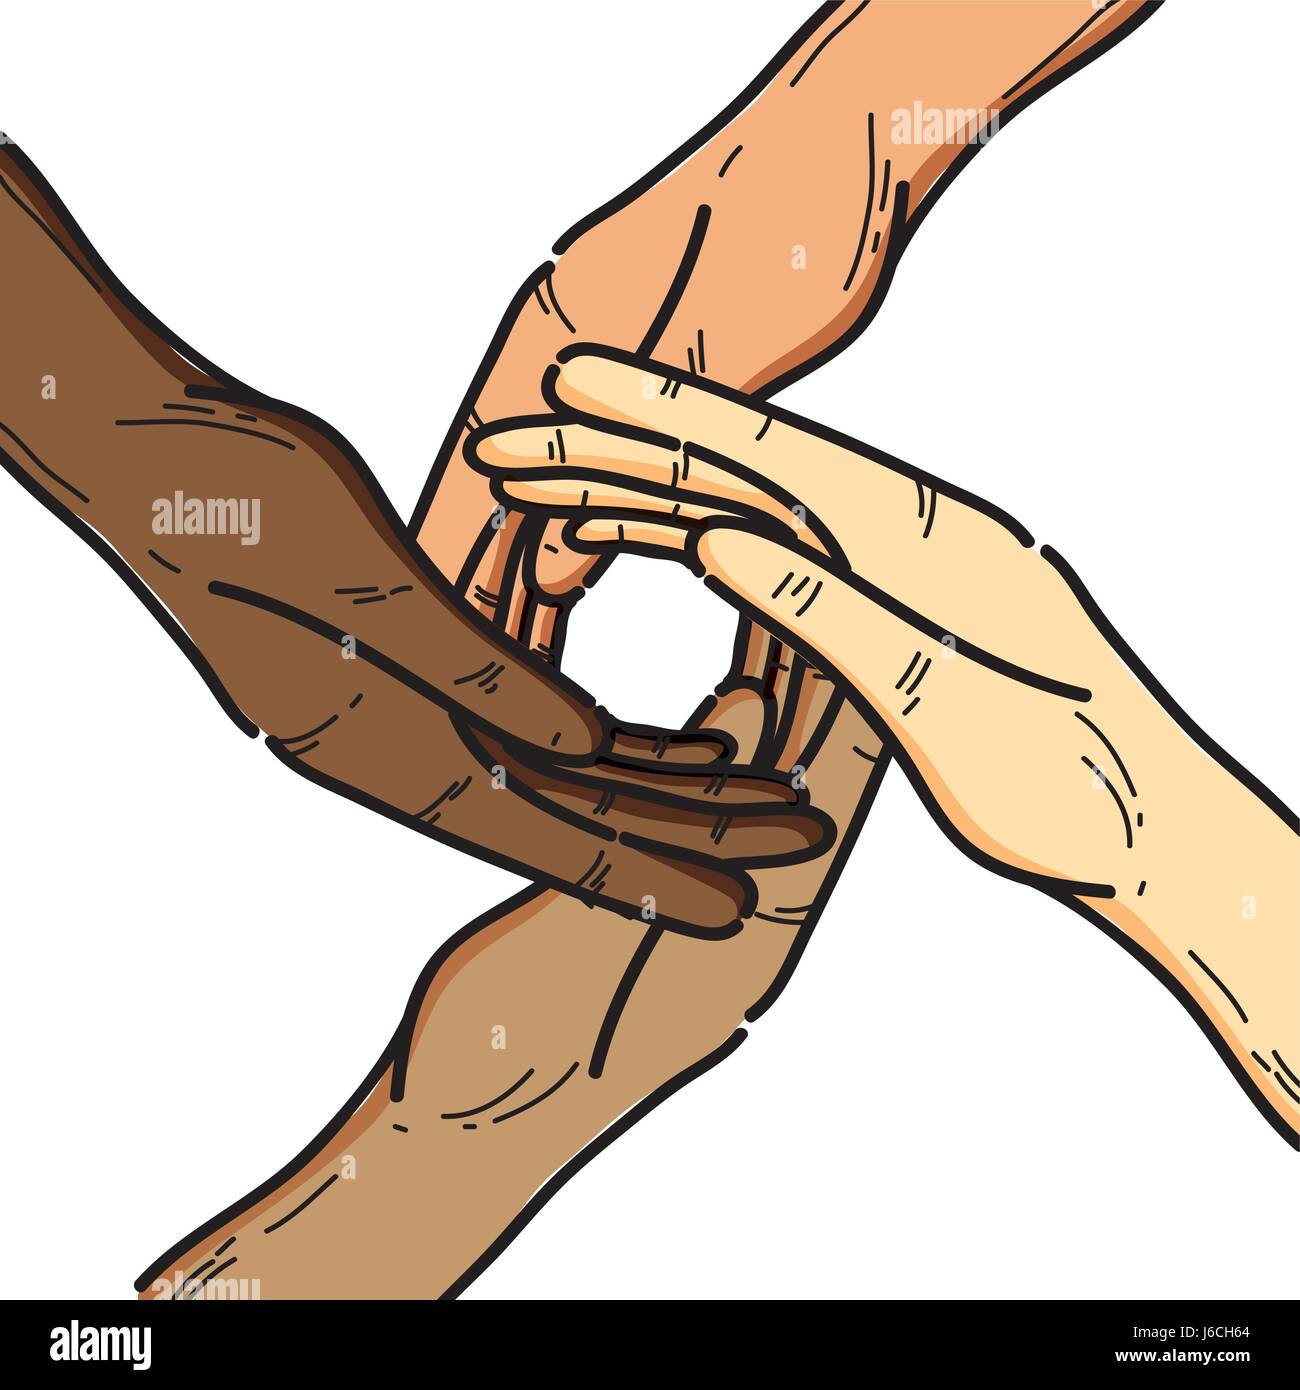 Friendship cut out stock images pictures alamy nice hands together like friendship symbol stock image buycottarizona Choice Image